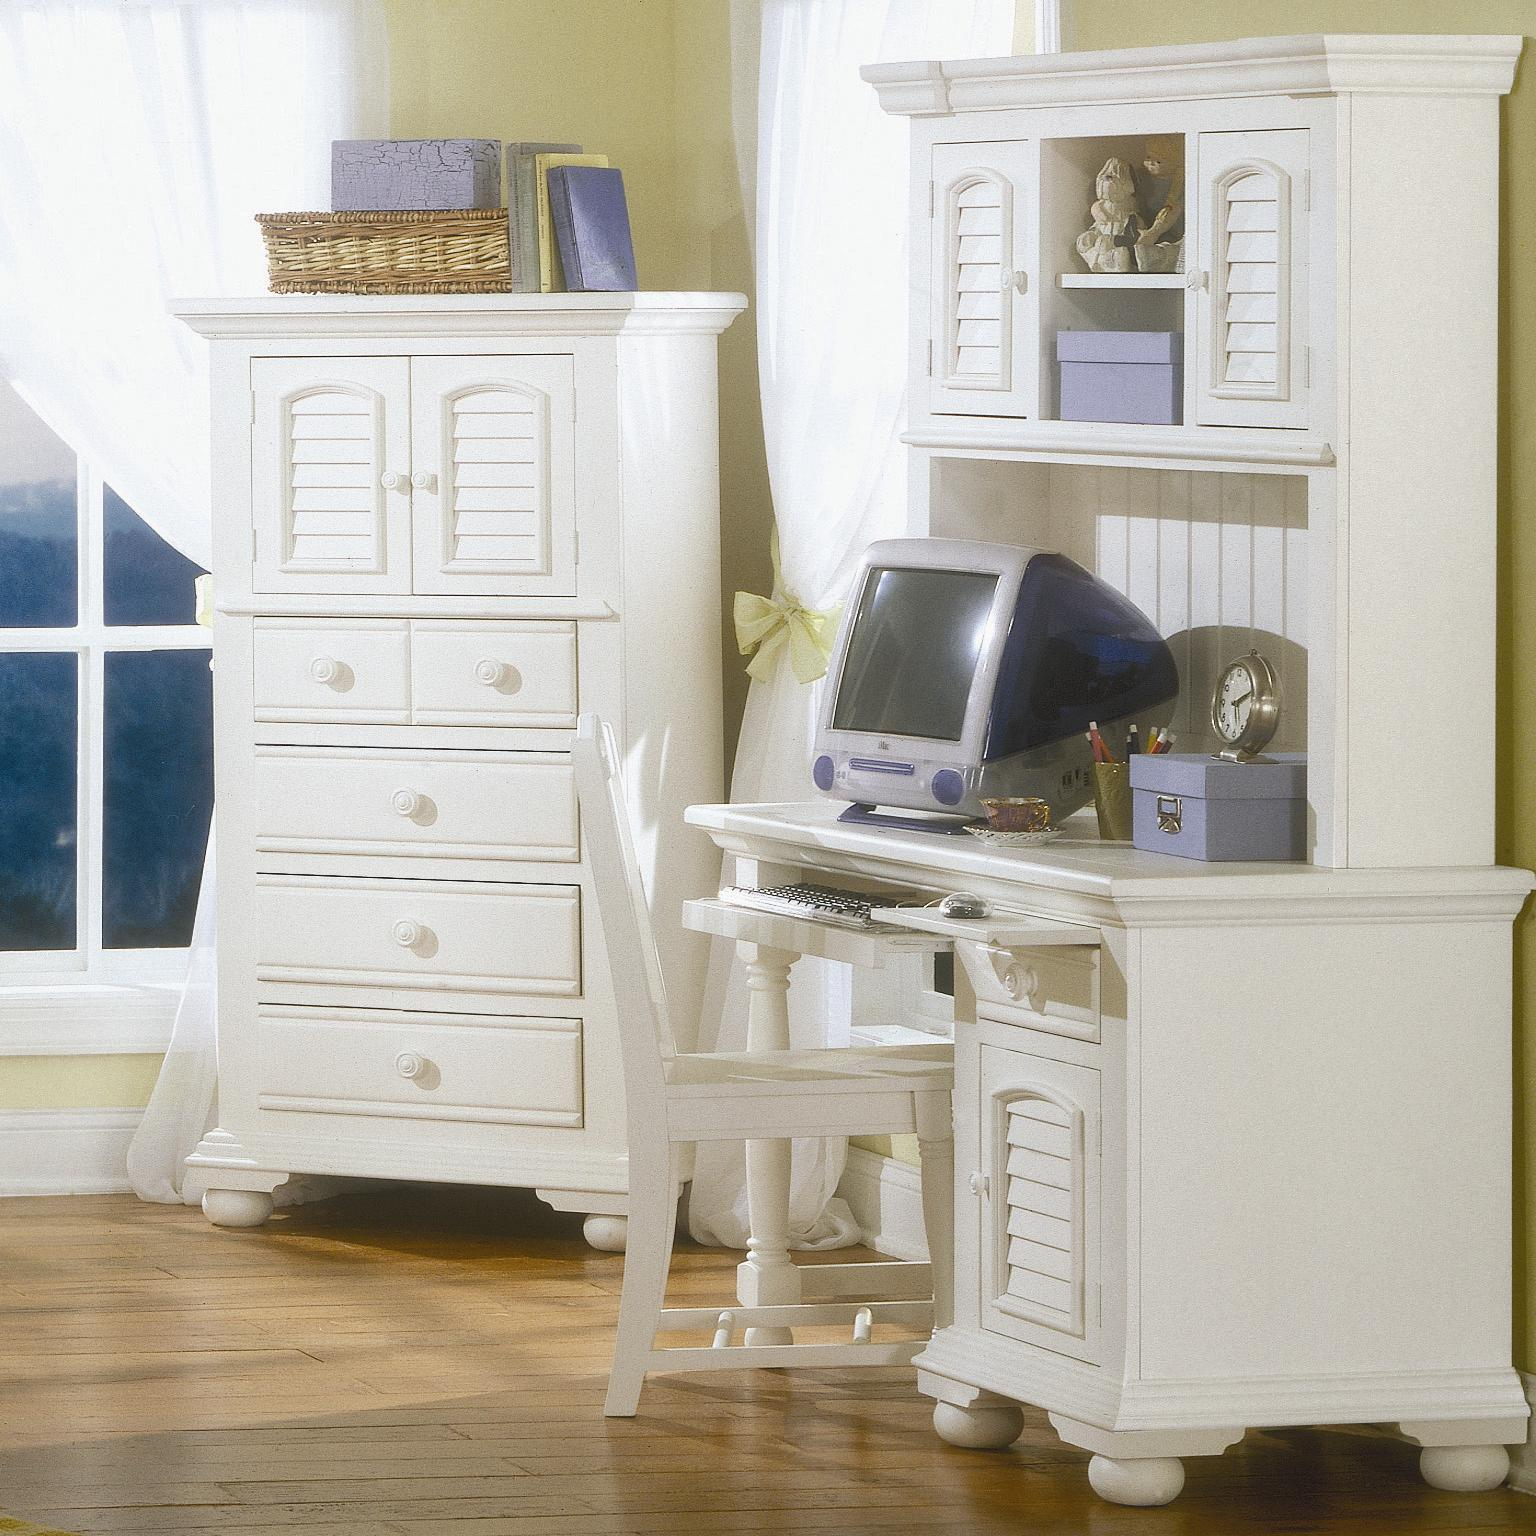 Incredible Cottage Traditions Youth Computer Desk With Hutch By American Woodcrafters At Lindys Furniture Company Best Image Libraries Counlowcountryjoecom